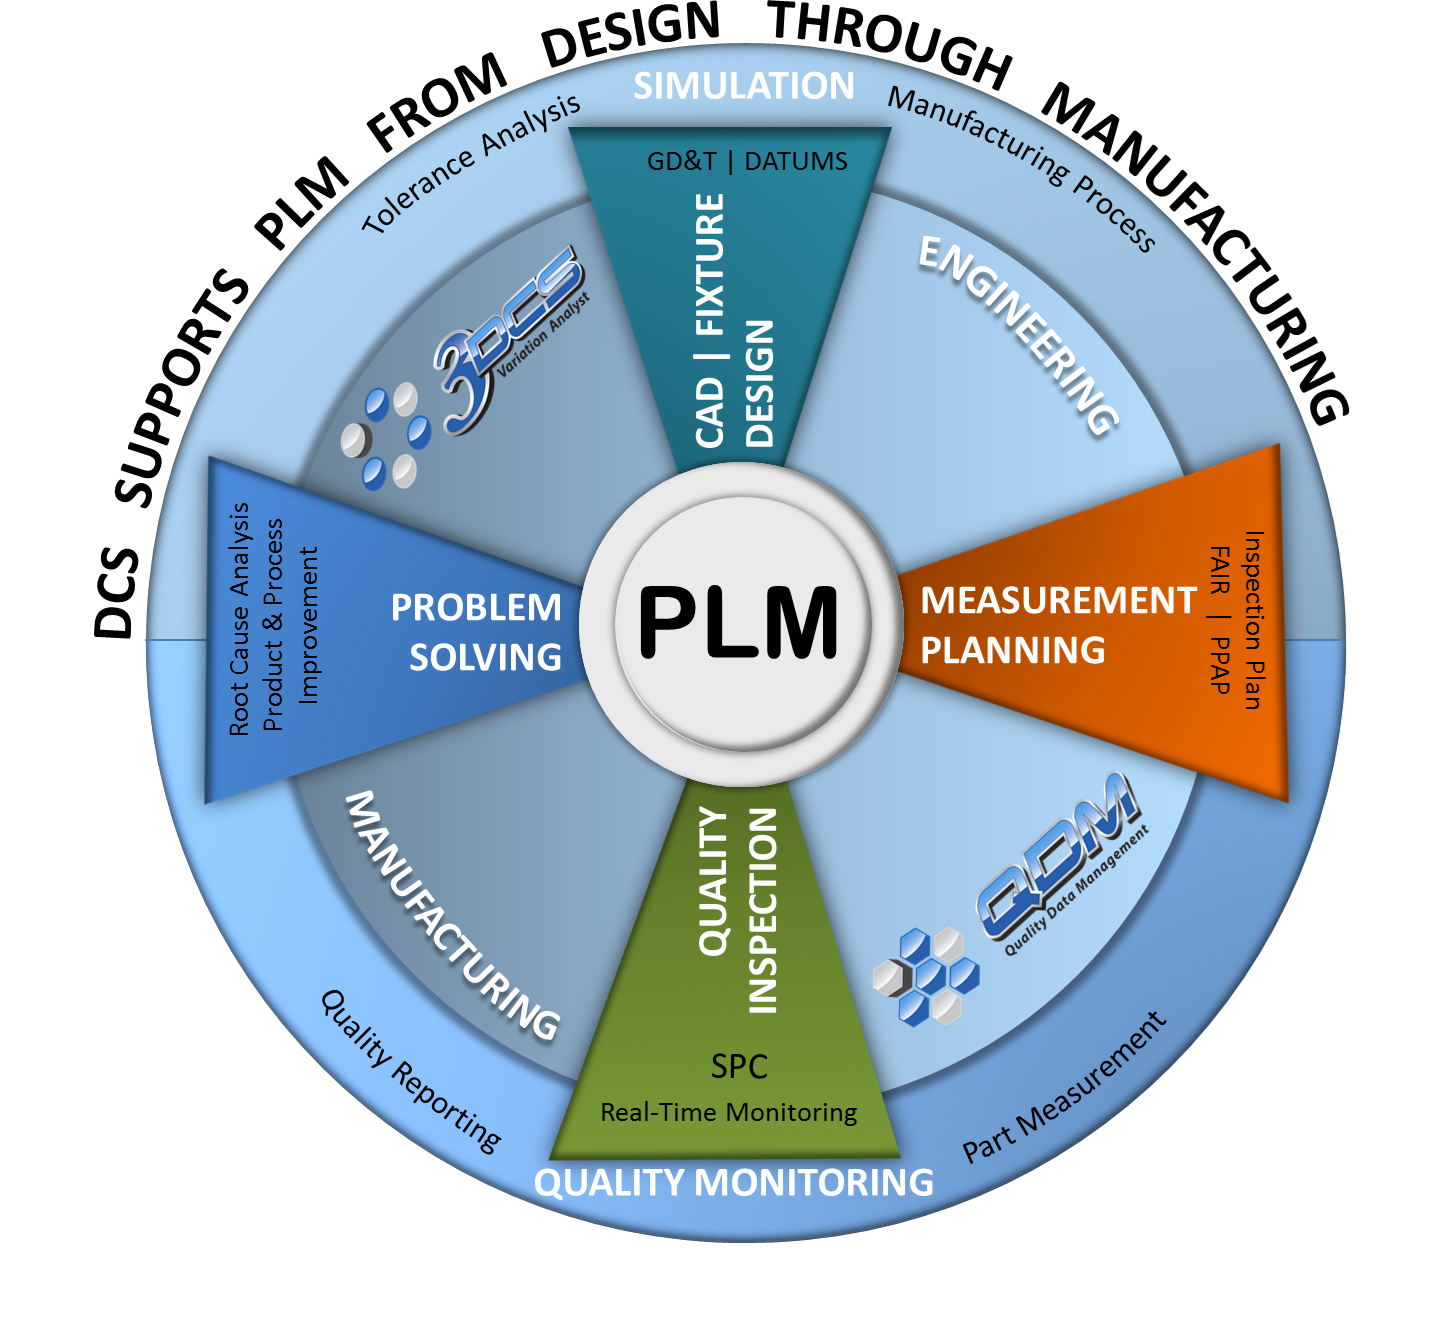 Closed Loop Manufacturing supports PLM